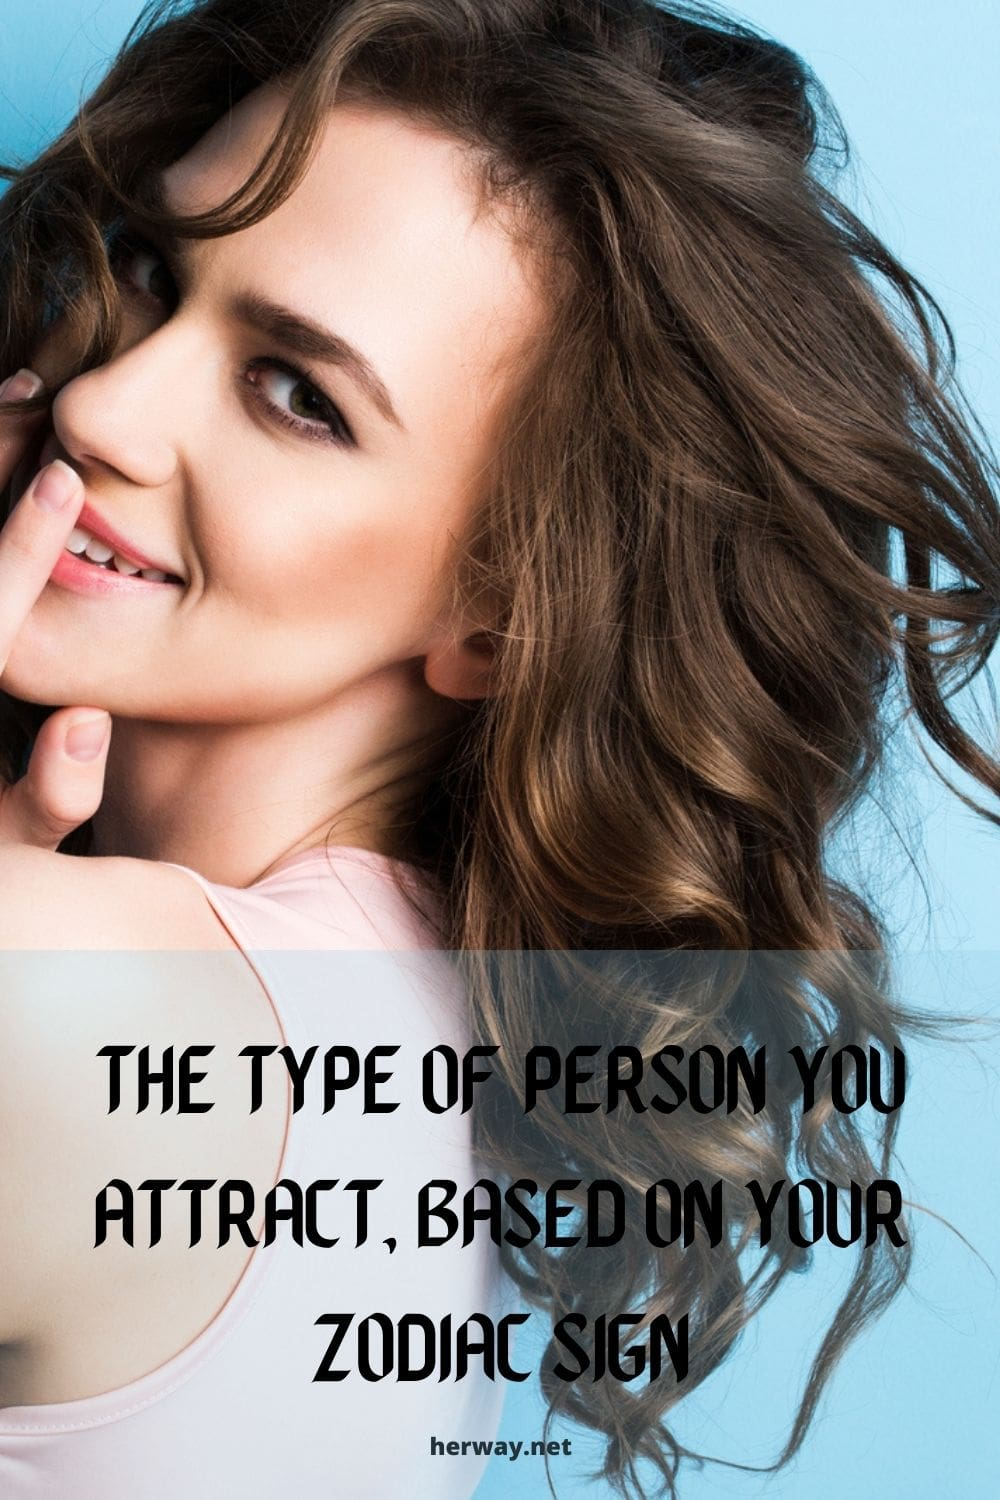 The Type Of Person You Attract, Based On Your Zodiac Sign